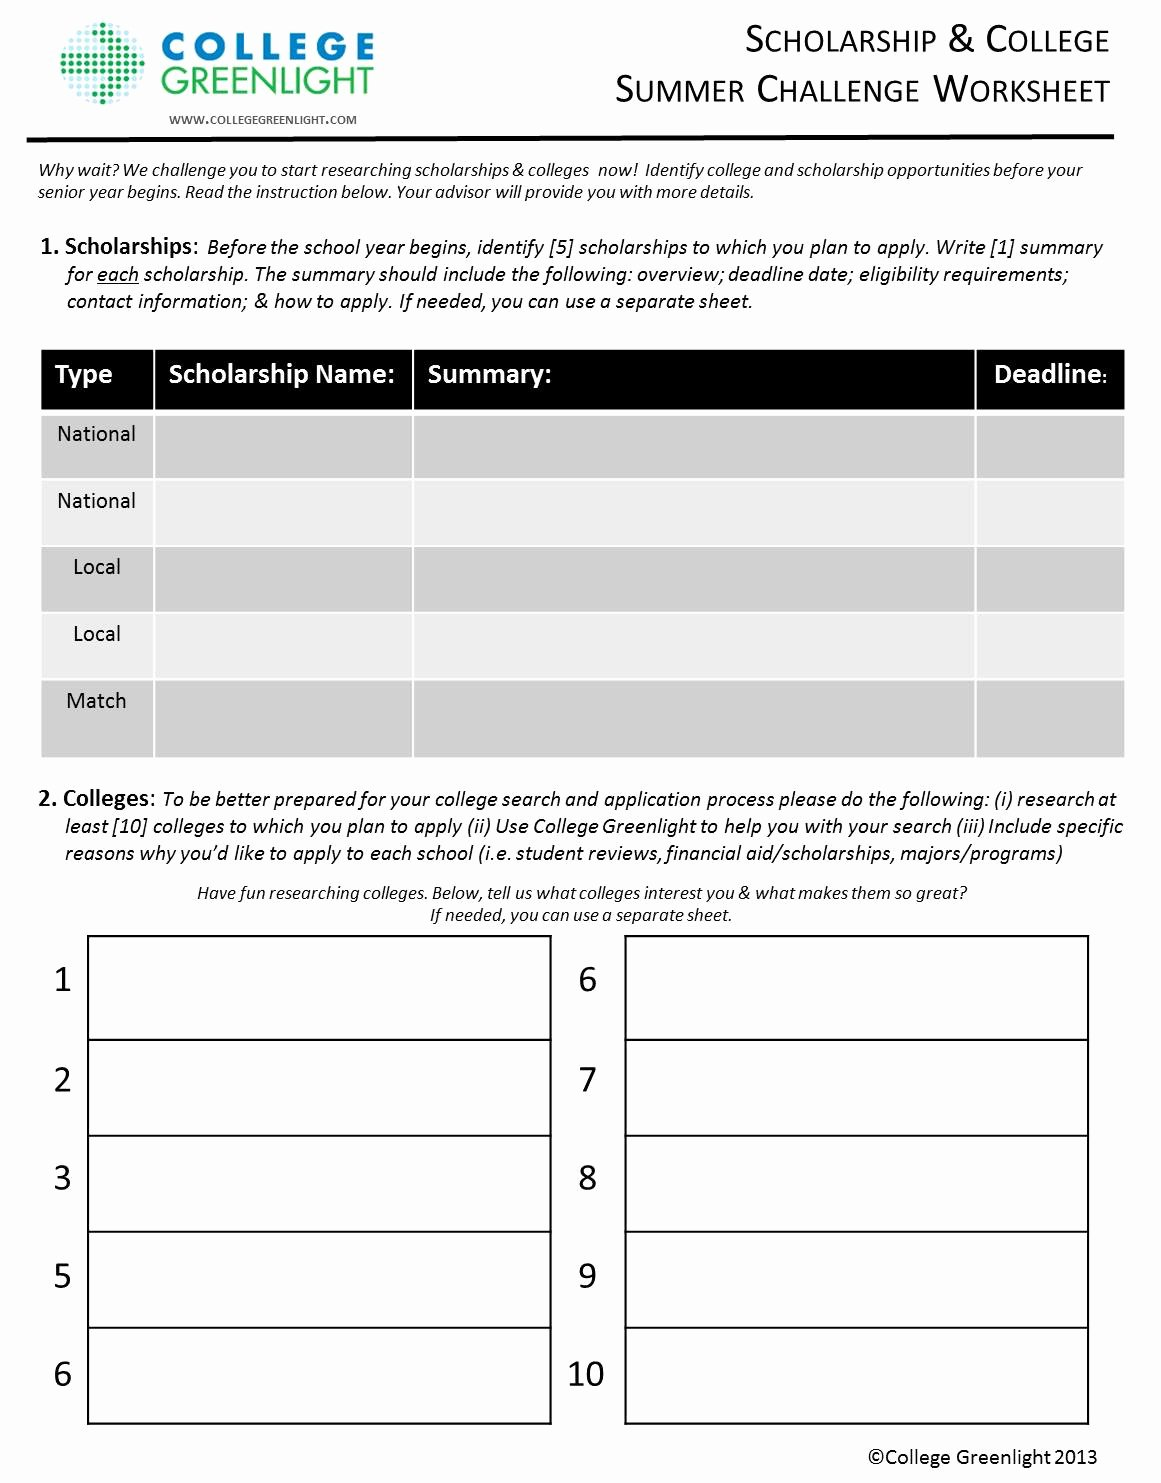 Choosing A College Worksheet Beautiful Build Your College and Scholarship List with This Helpful